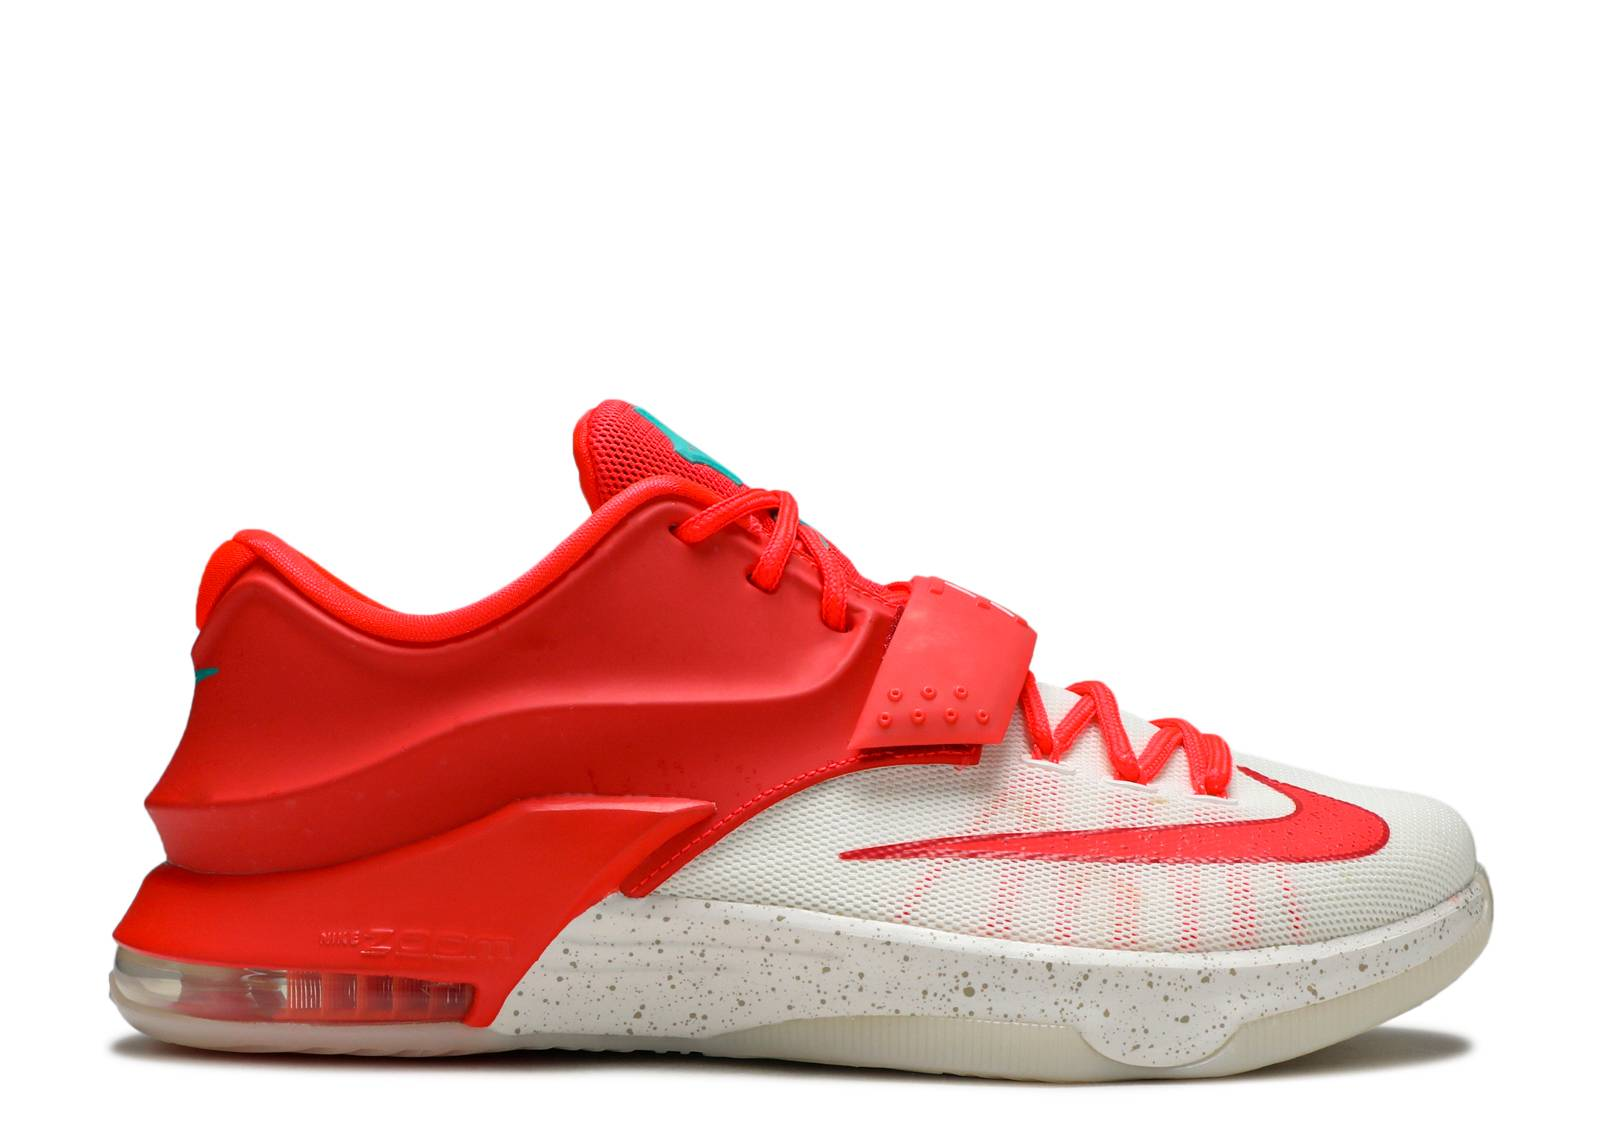 new products 0d465 6efdc nike. kd 7 xmas